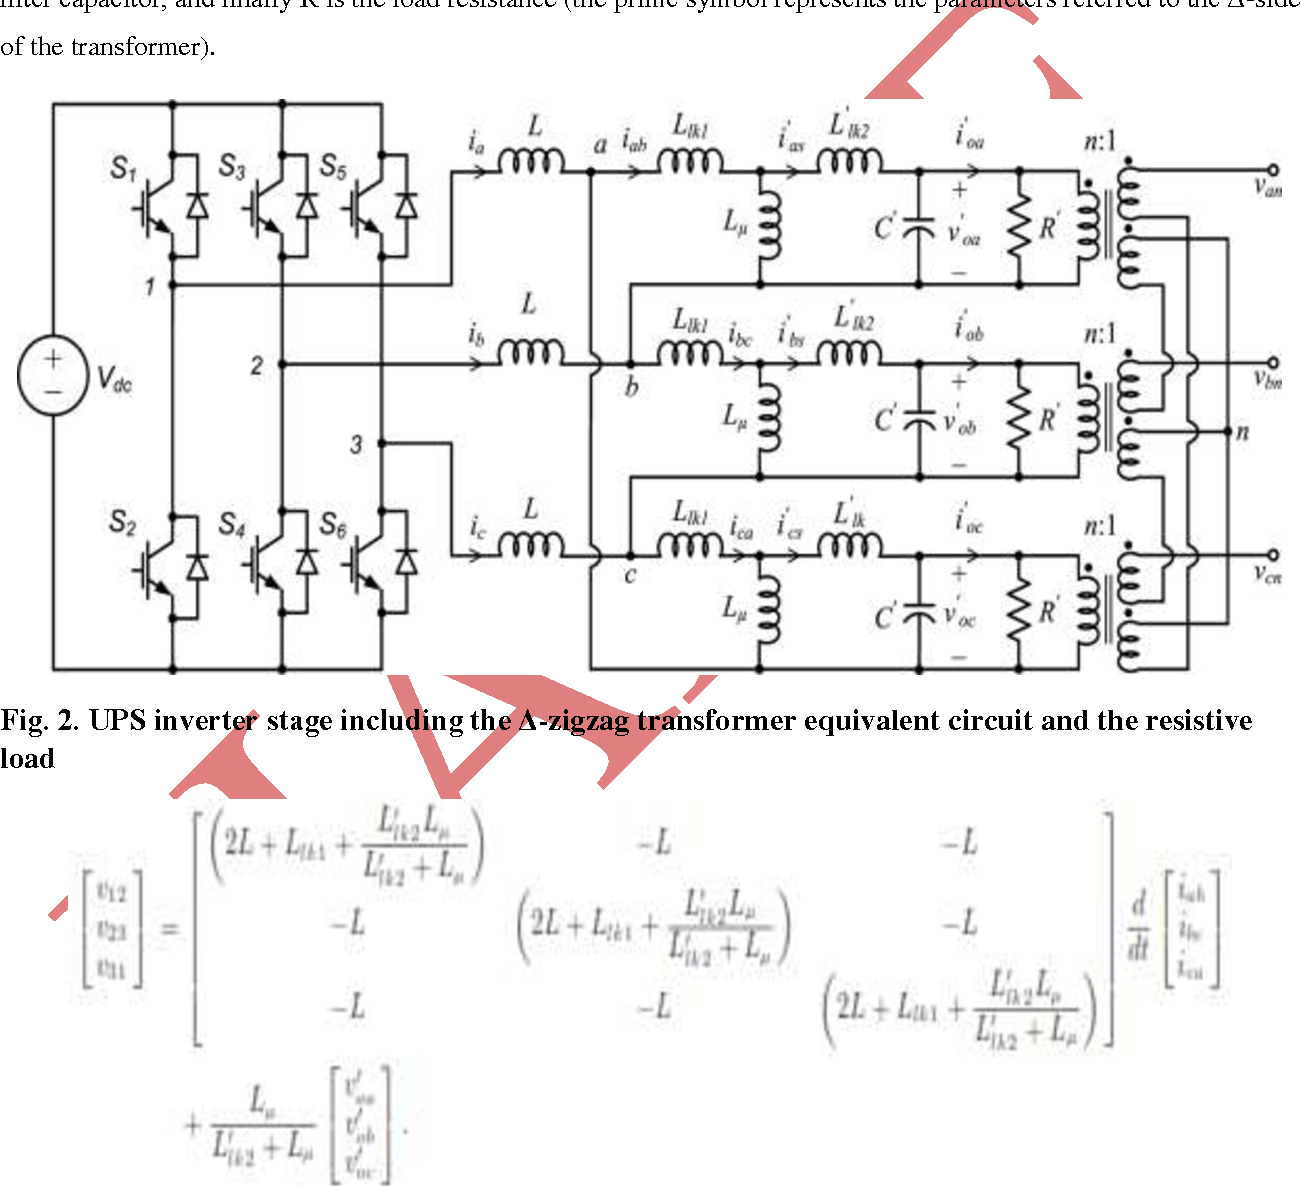 hight resolution of ups inverter stage including the zigzag transformer equivalent circuit and